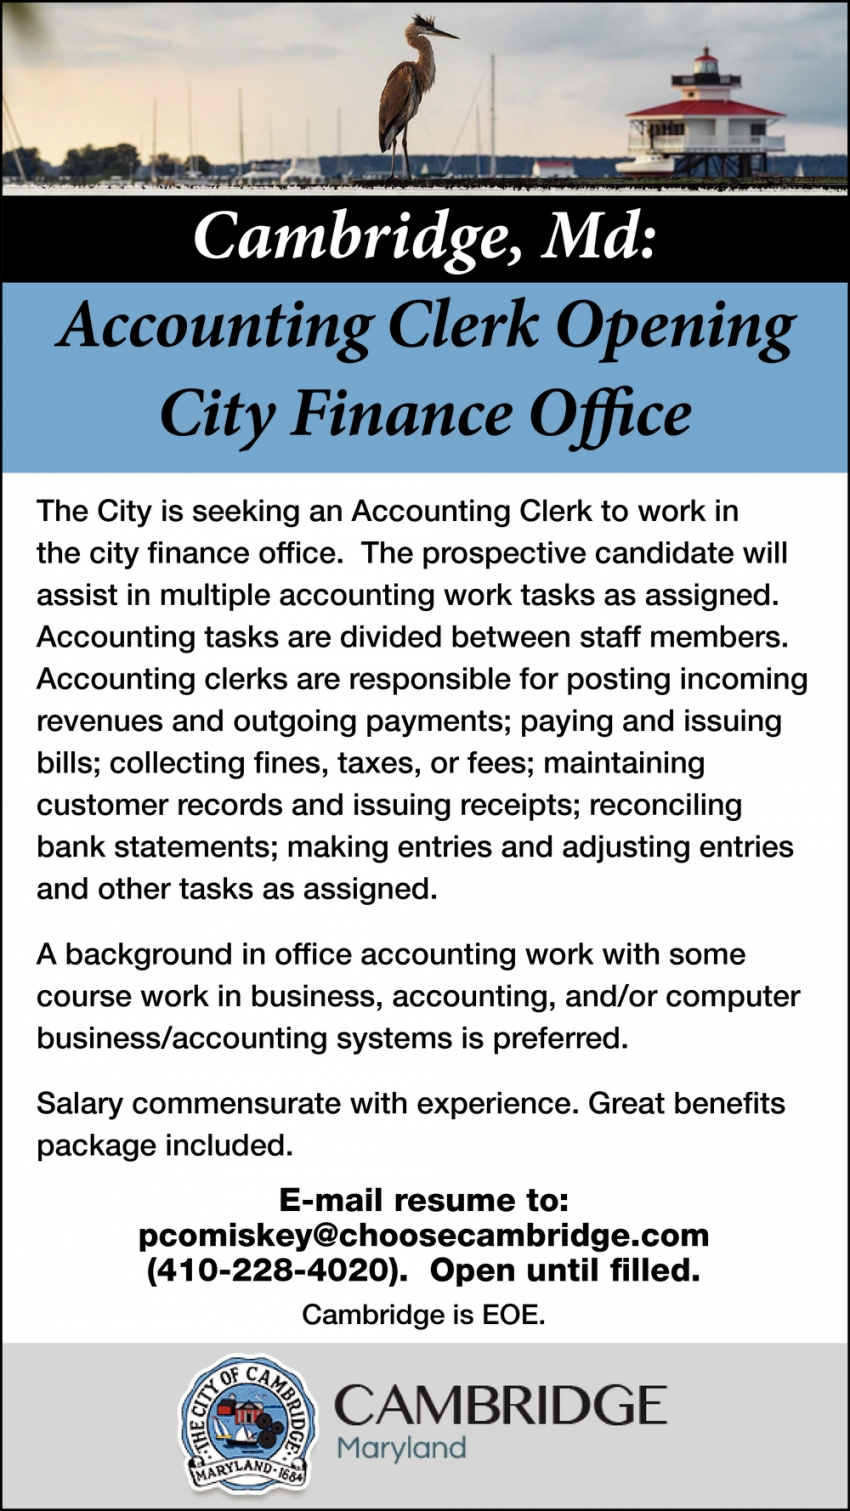 Accounting Clerk Opening